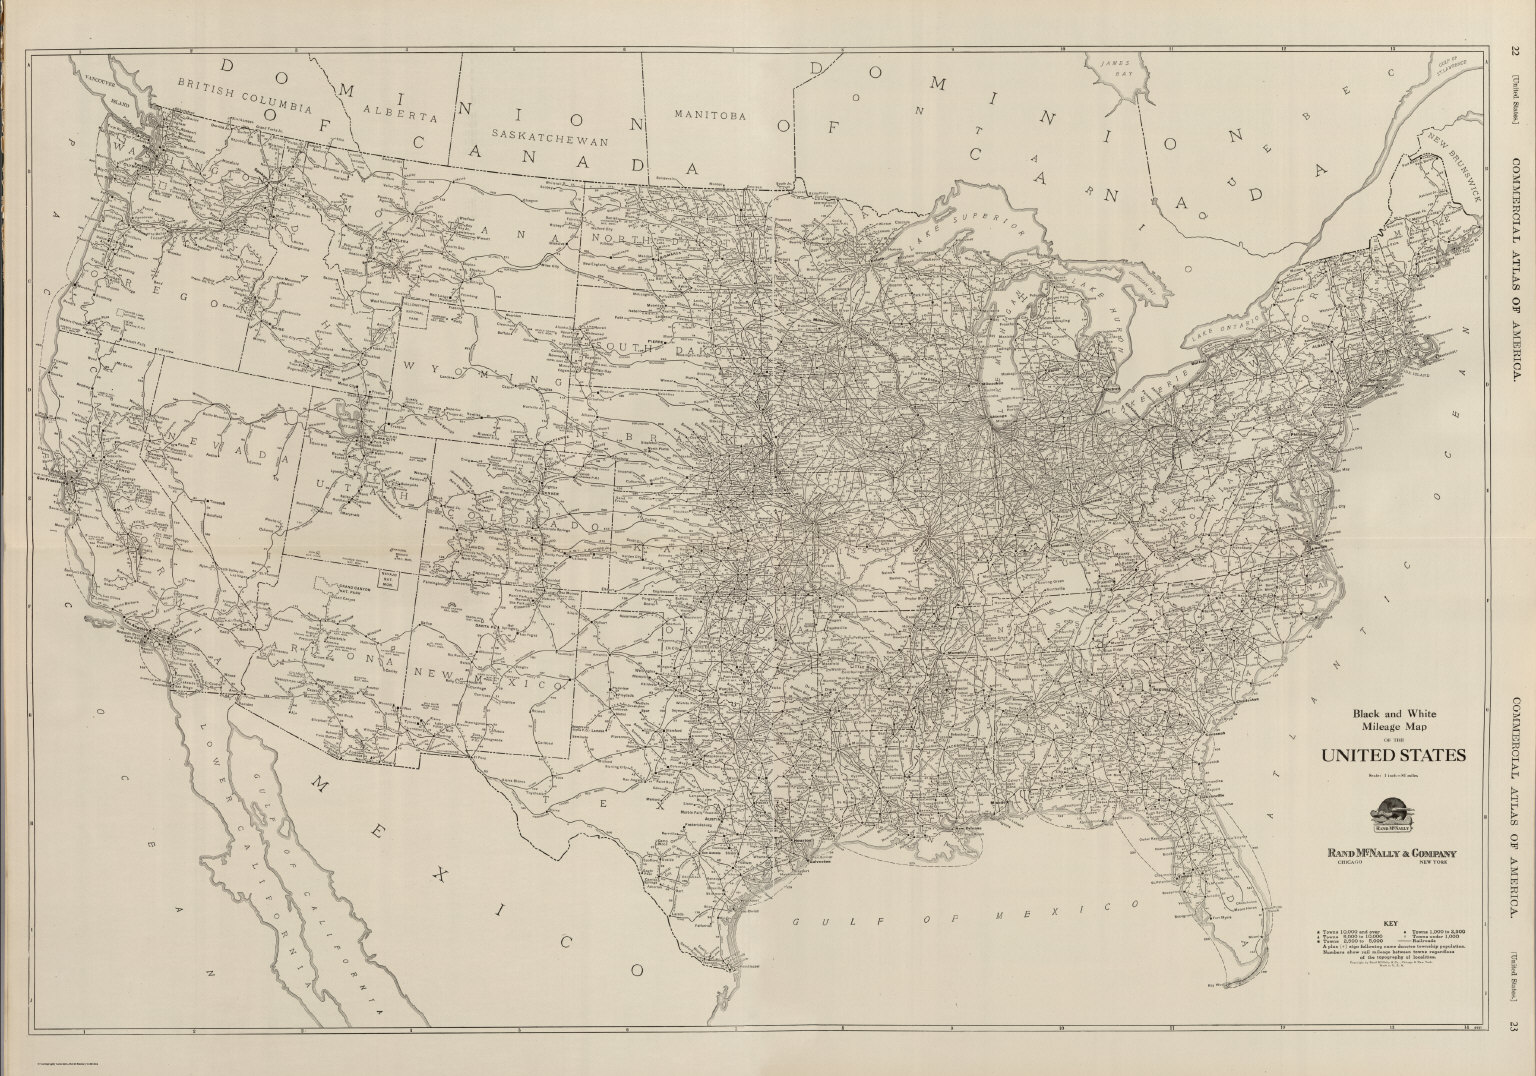 Composite Black and White Mileage Map of the United States – Map Usa Black and White